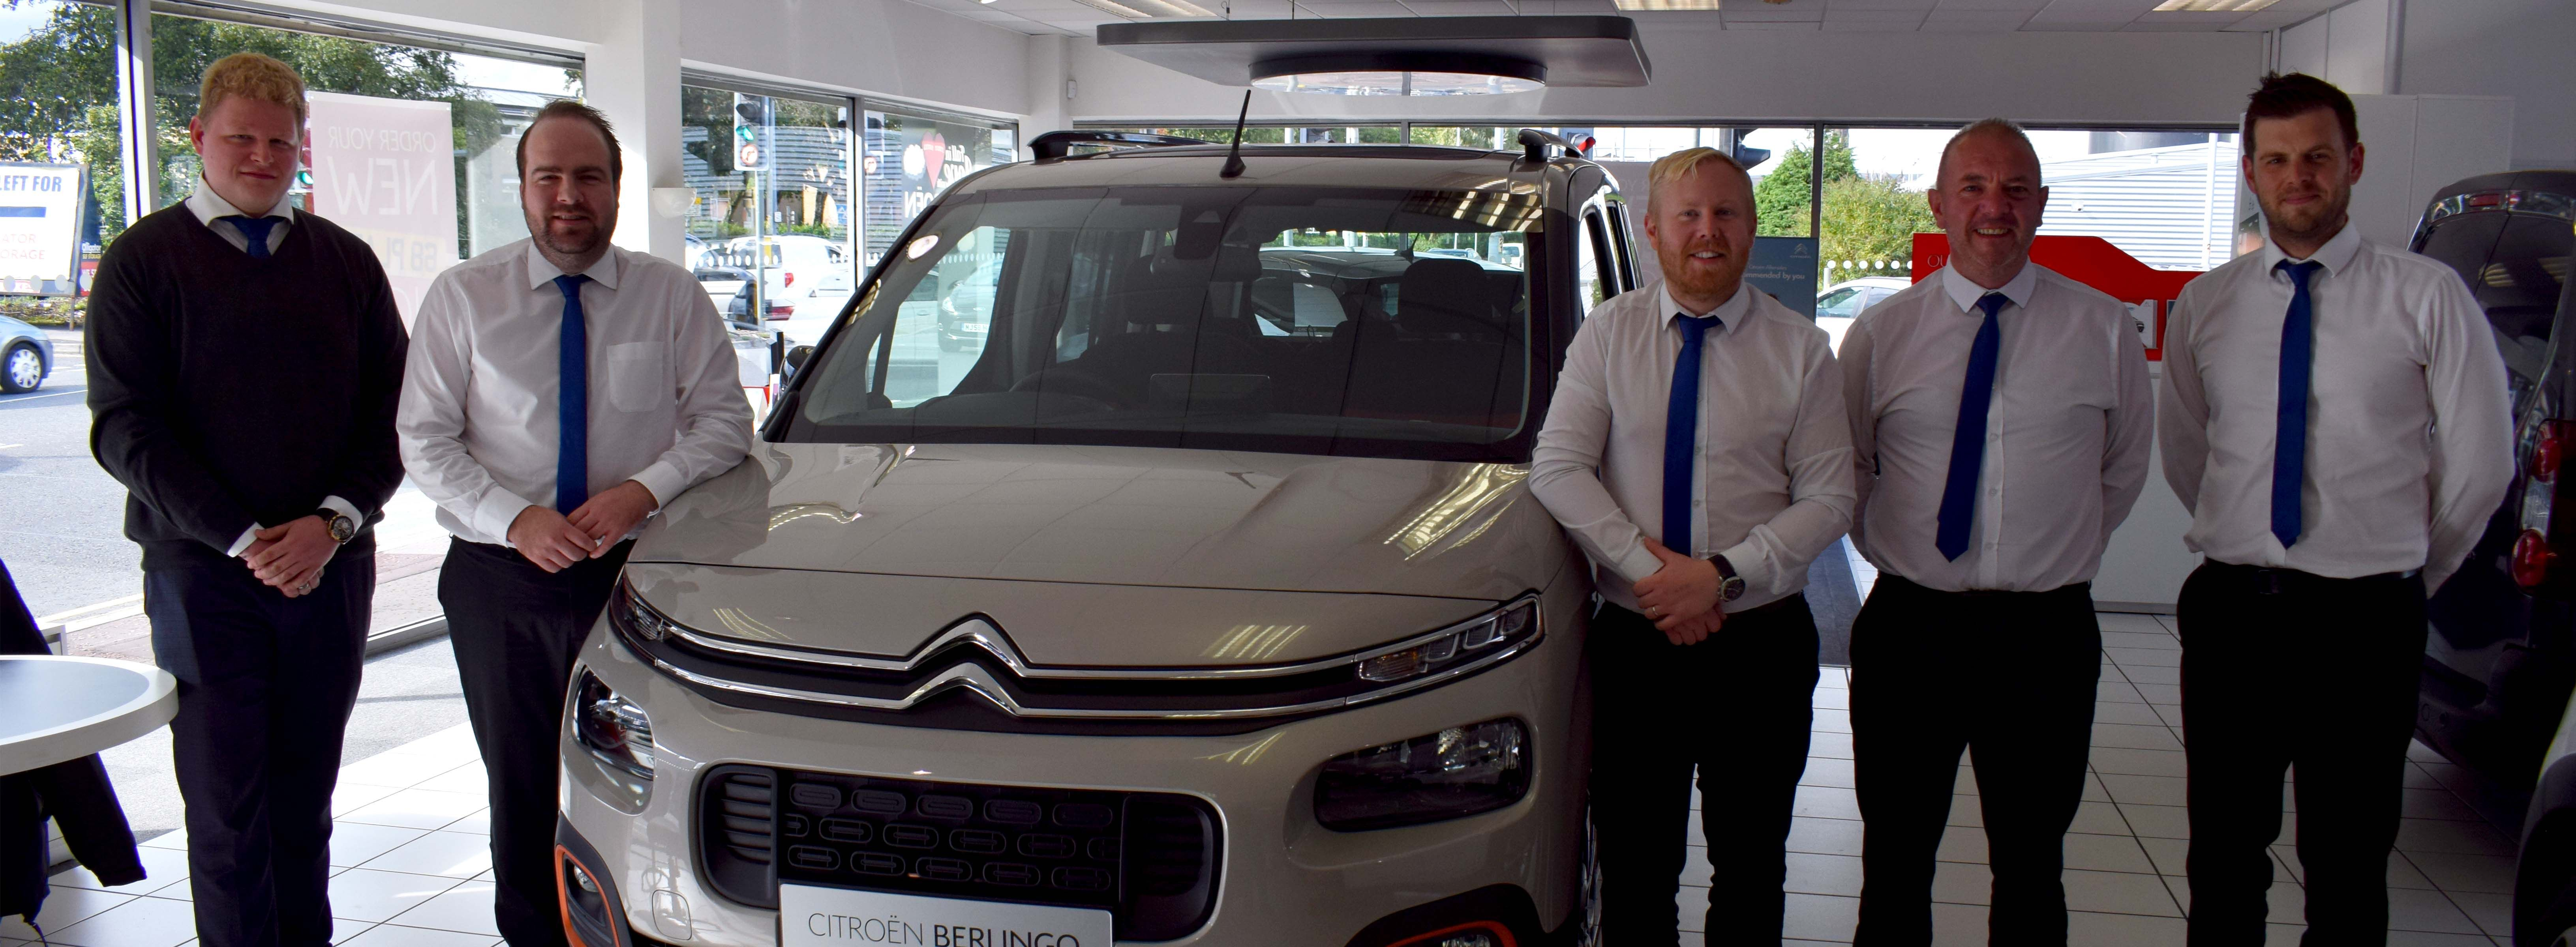 BCC Citroen Bolton & Blackburn ranked within top 3 in the country